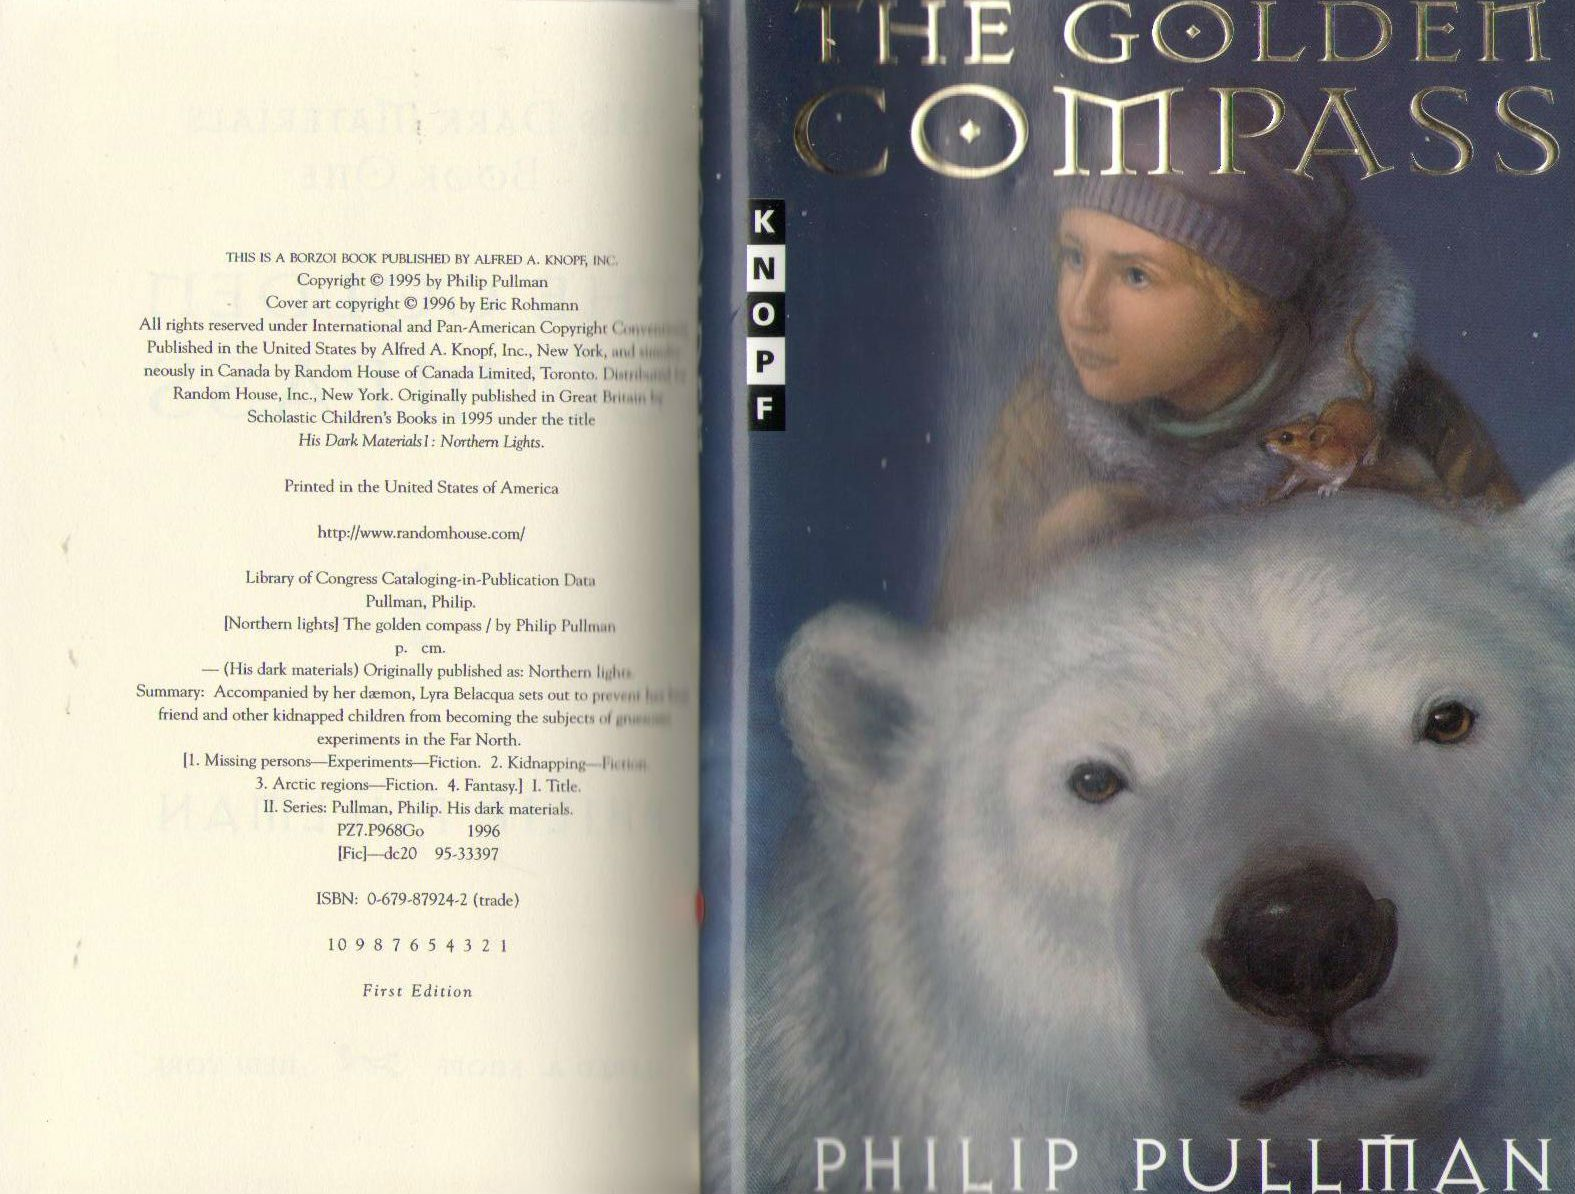 The Golden Compass (His Dark Materials), Pullman, Philip